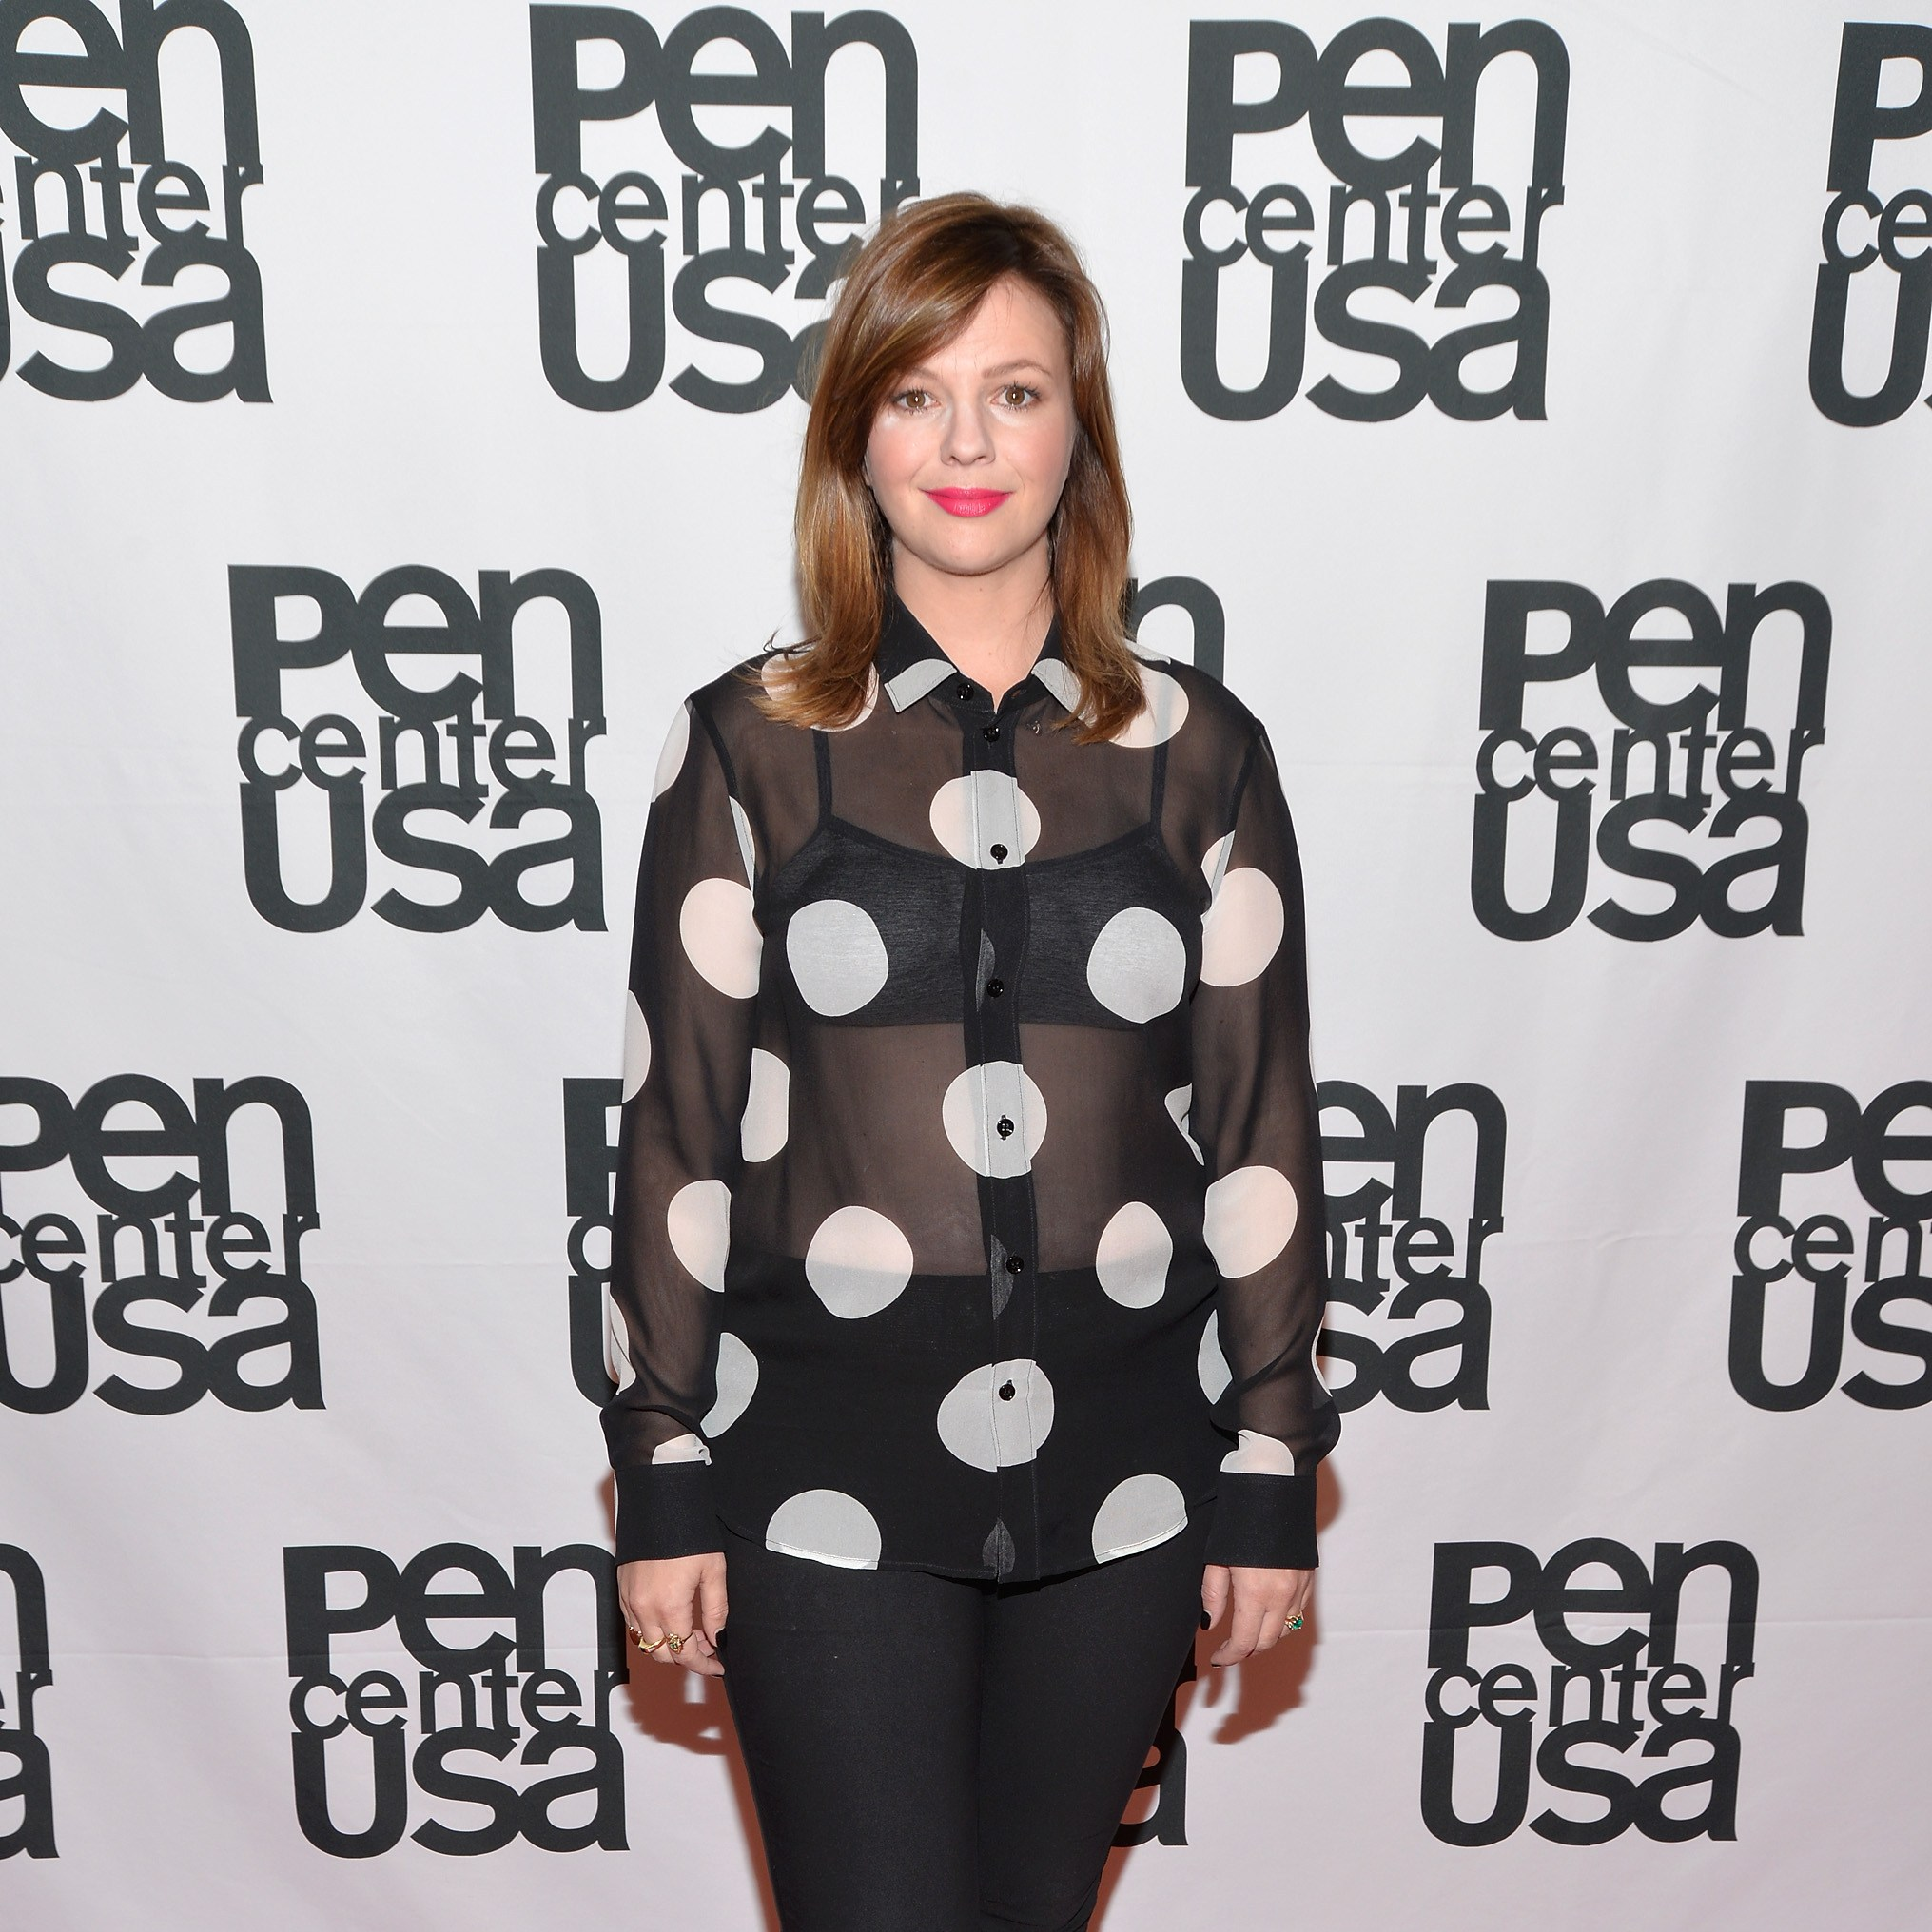 BEVERLY HILLS, CA - SEPTEMBER 28:  Actress Amber Tamblyn attends PEN Center USA's 26th Annual Literary Awards Festival honoring Isabel Allende at the Beverly Wilshire Four Seasons Hotel on September 28, 2016 in Beverly Hills, California.  (Photo by Michael Tullberg/Getty Images)